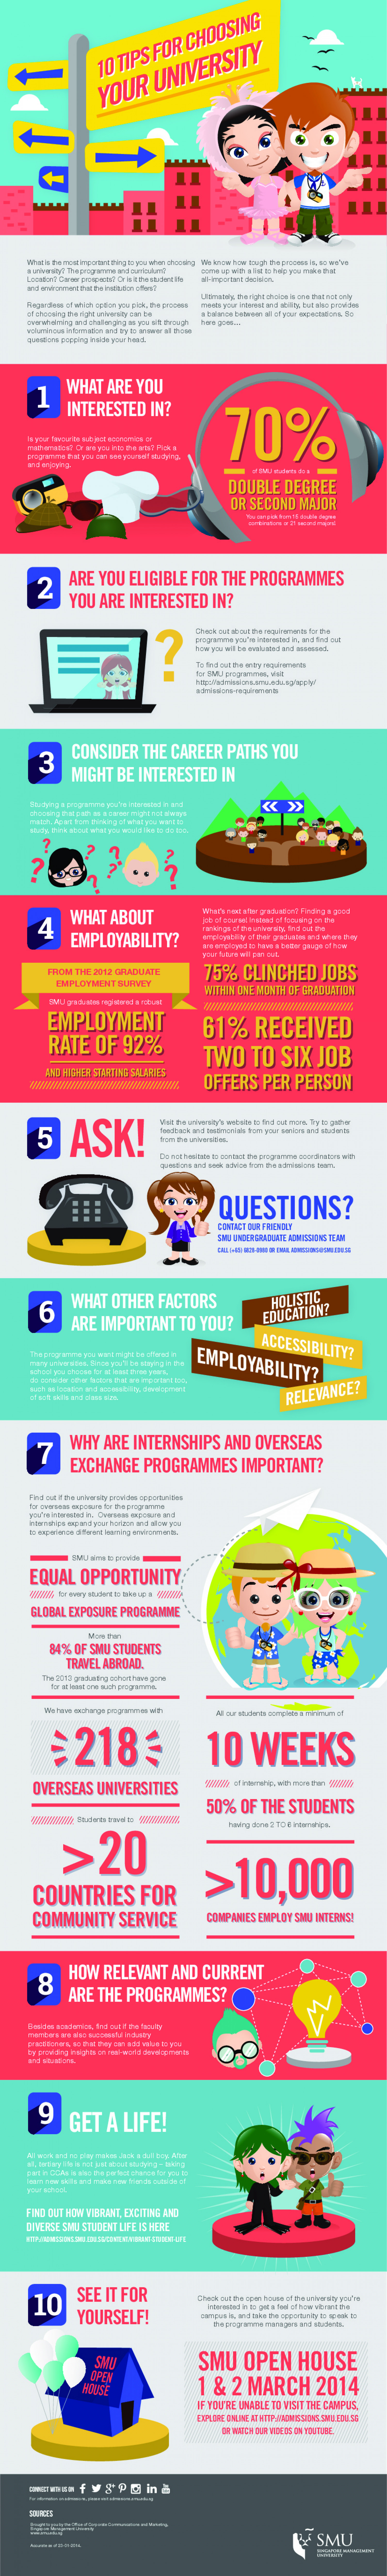 10 Tips for Choosing Your University Infographic